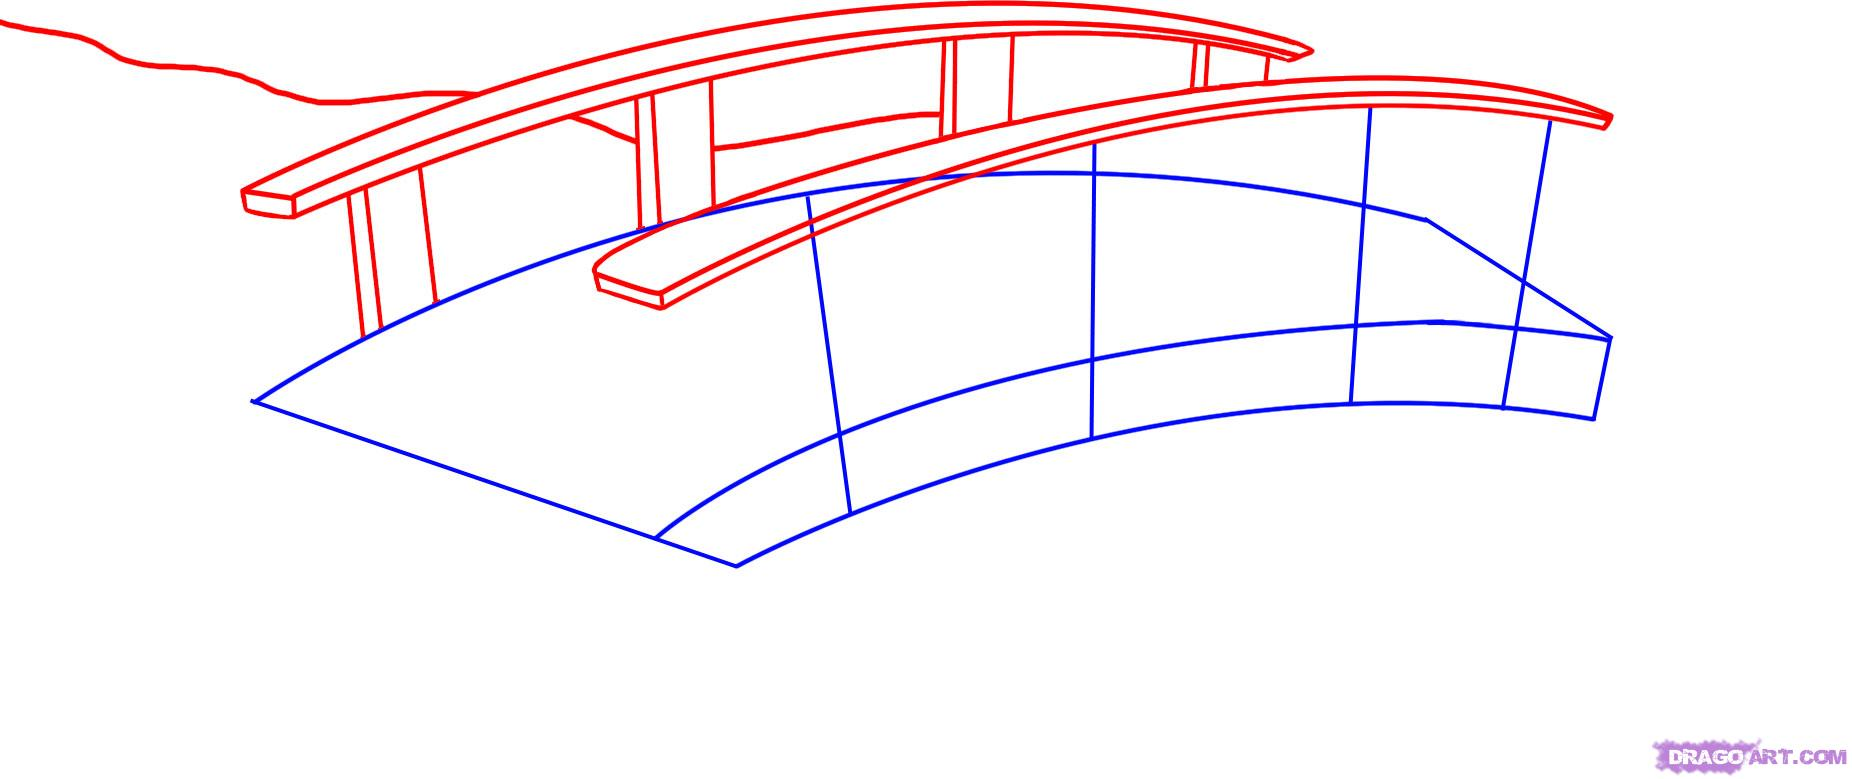 Drawn bridge By step Bridges How 2